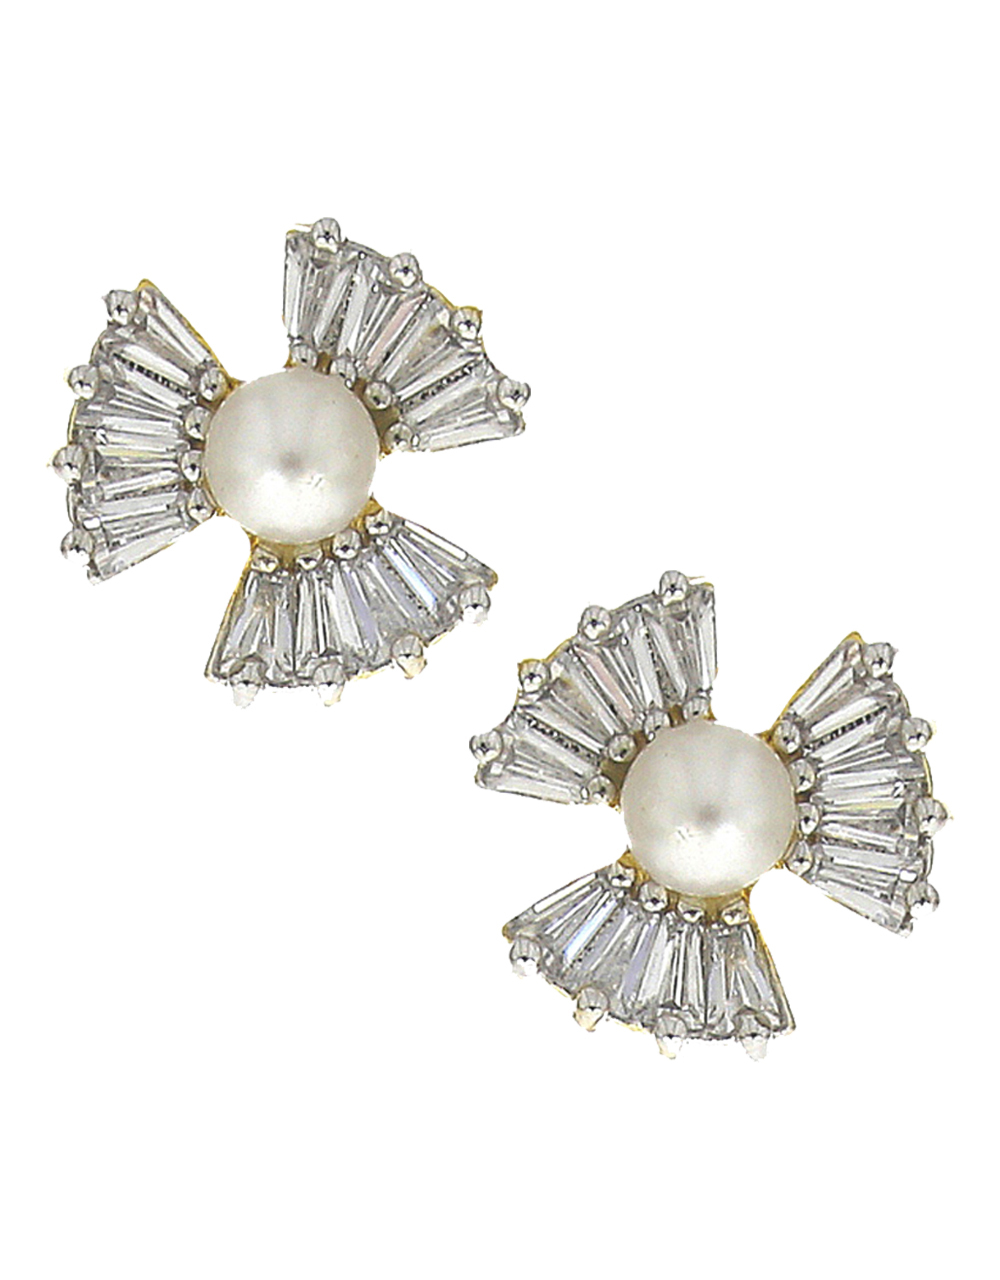 White stones studded with pearl beads gold finish pendant with earrings set